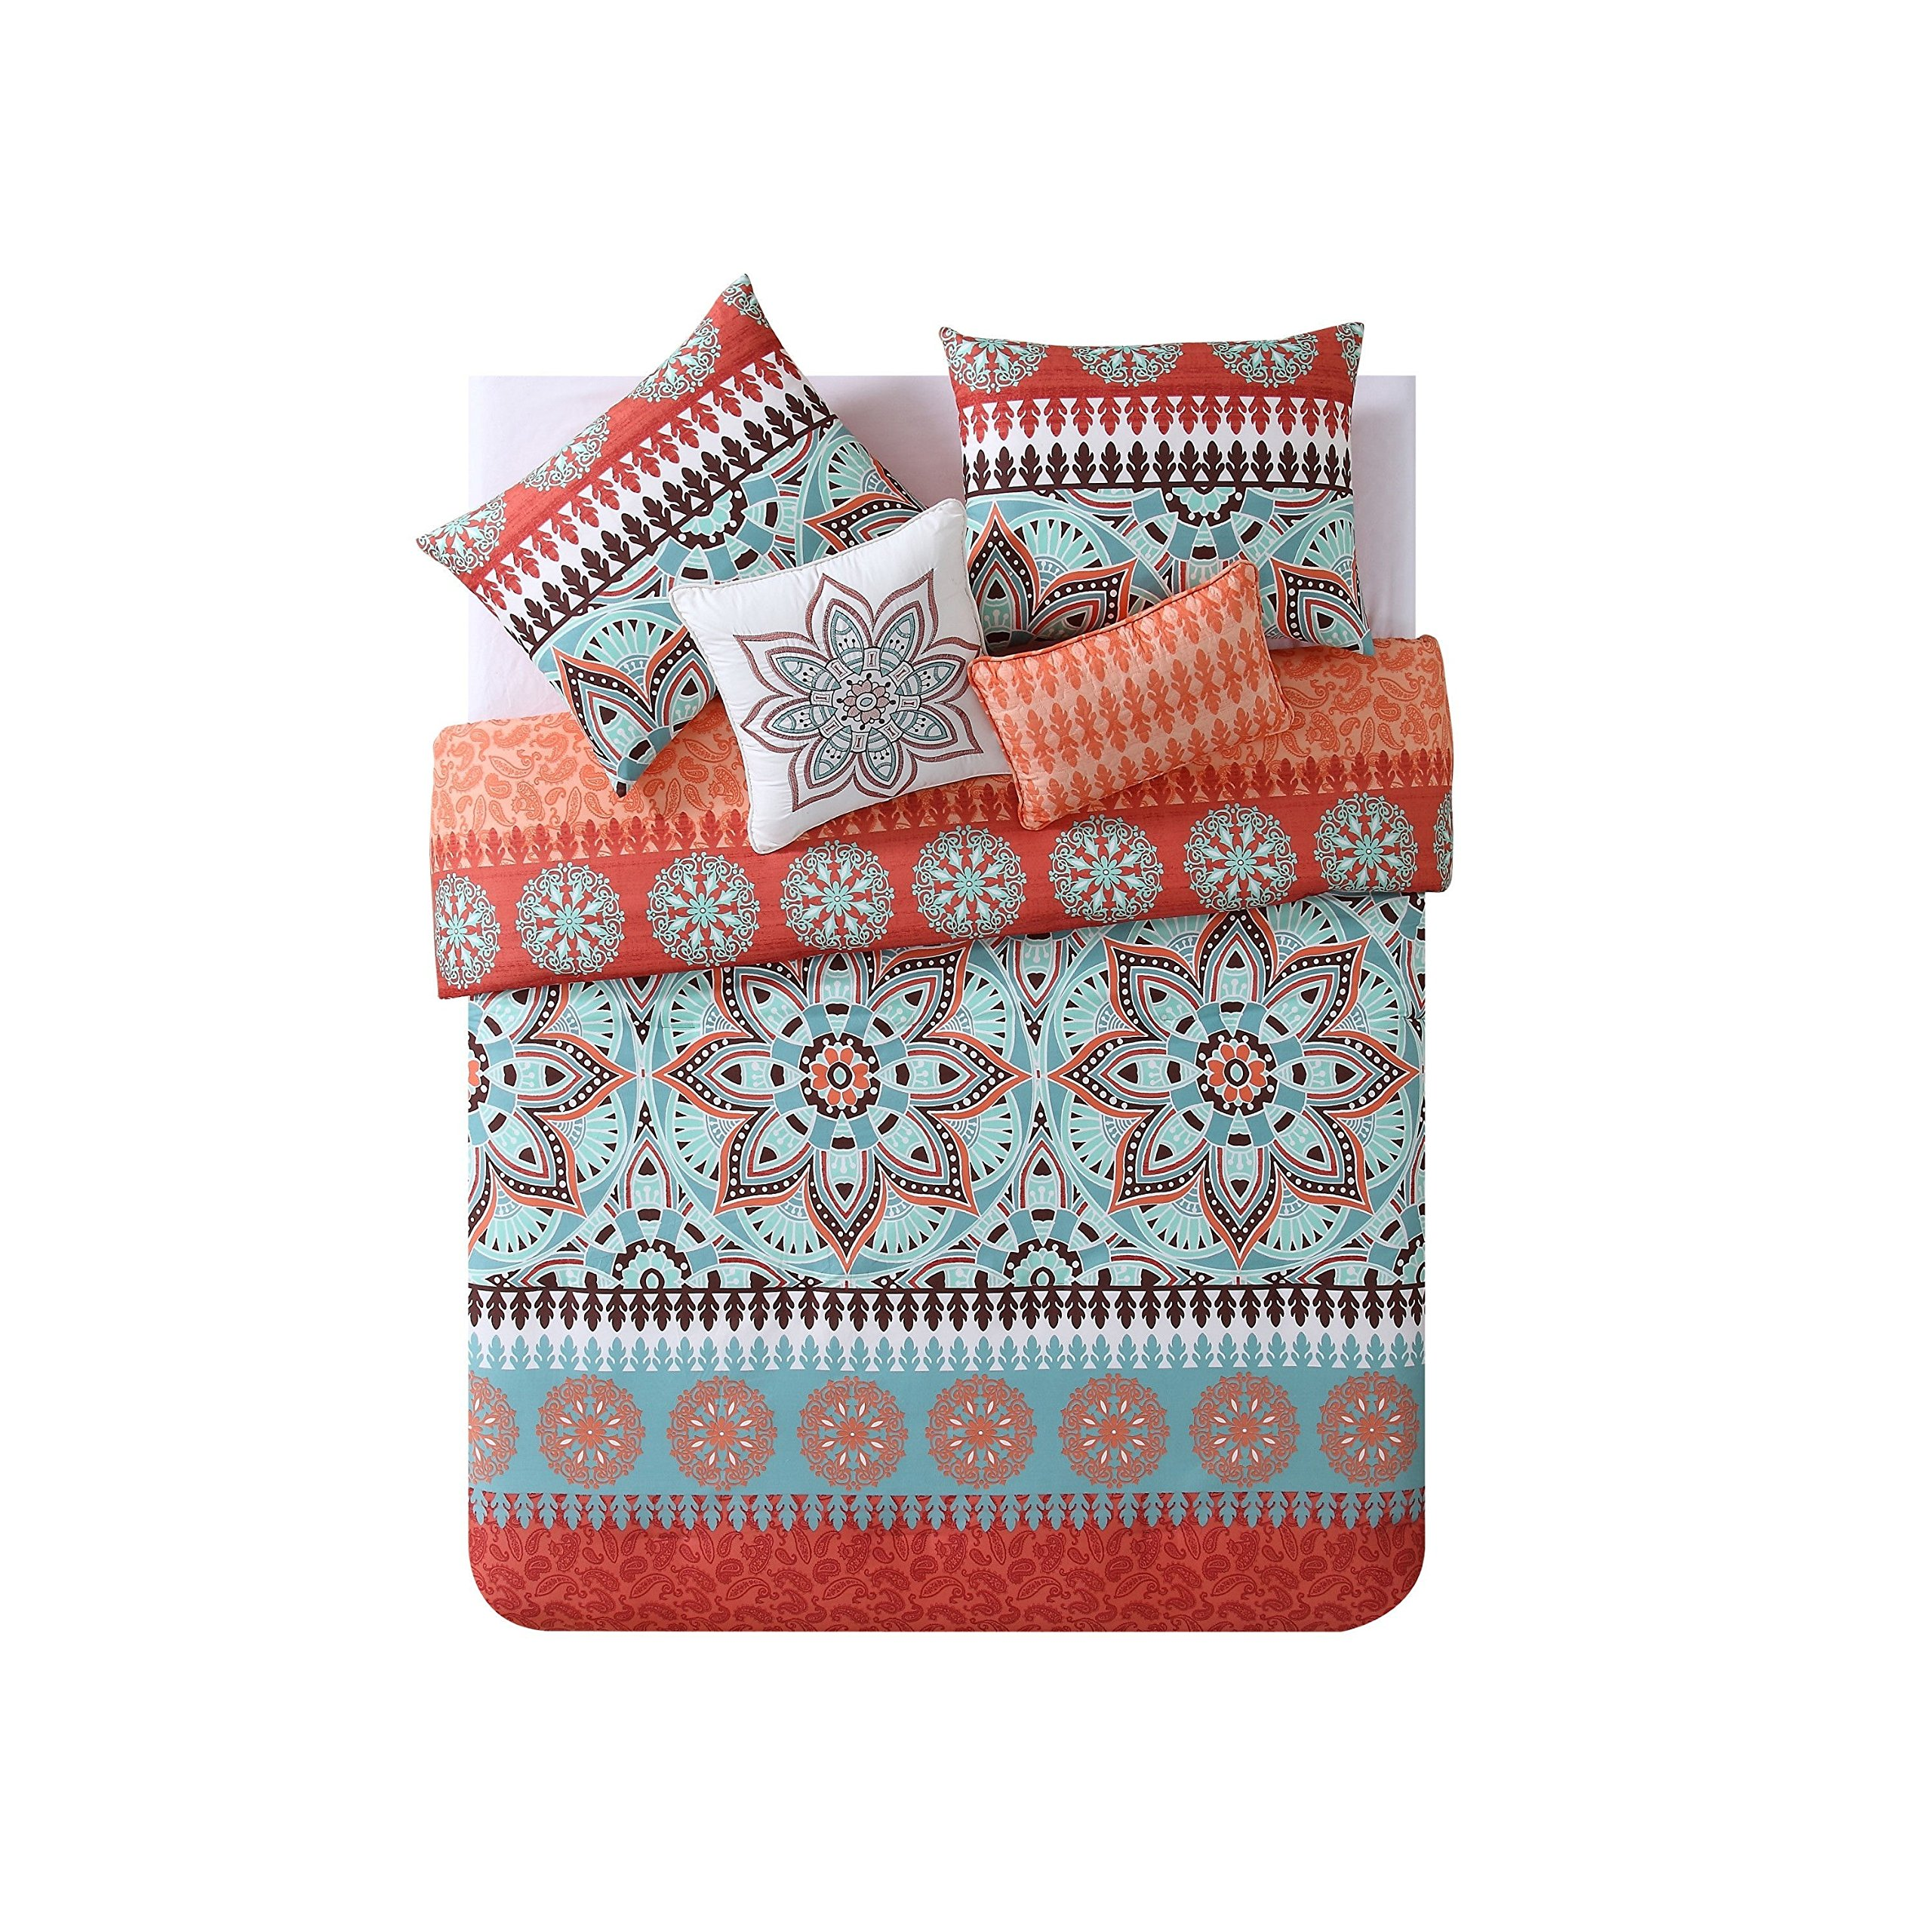 MPN 4 Piece Boho Chic Abstract Orange Floral Medallion Comforter Twin XL Set, Aqua Blue Bedding Bohemian Flowers Patterns Southwest Themed Bordered Tribal Native American Hippie, Reversible Polyester